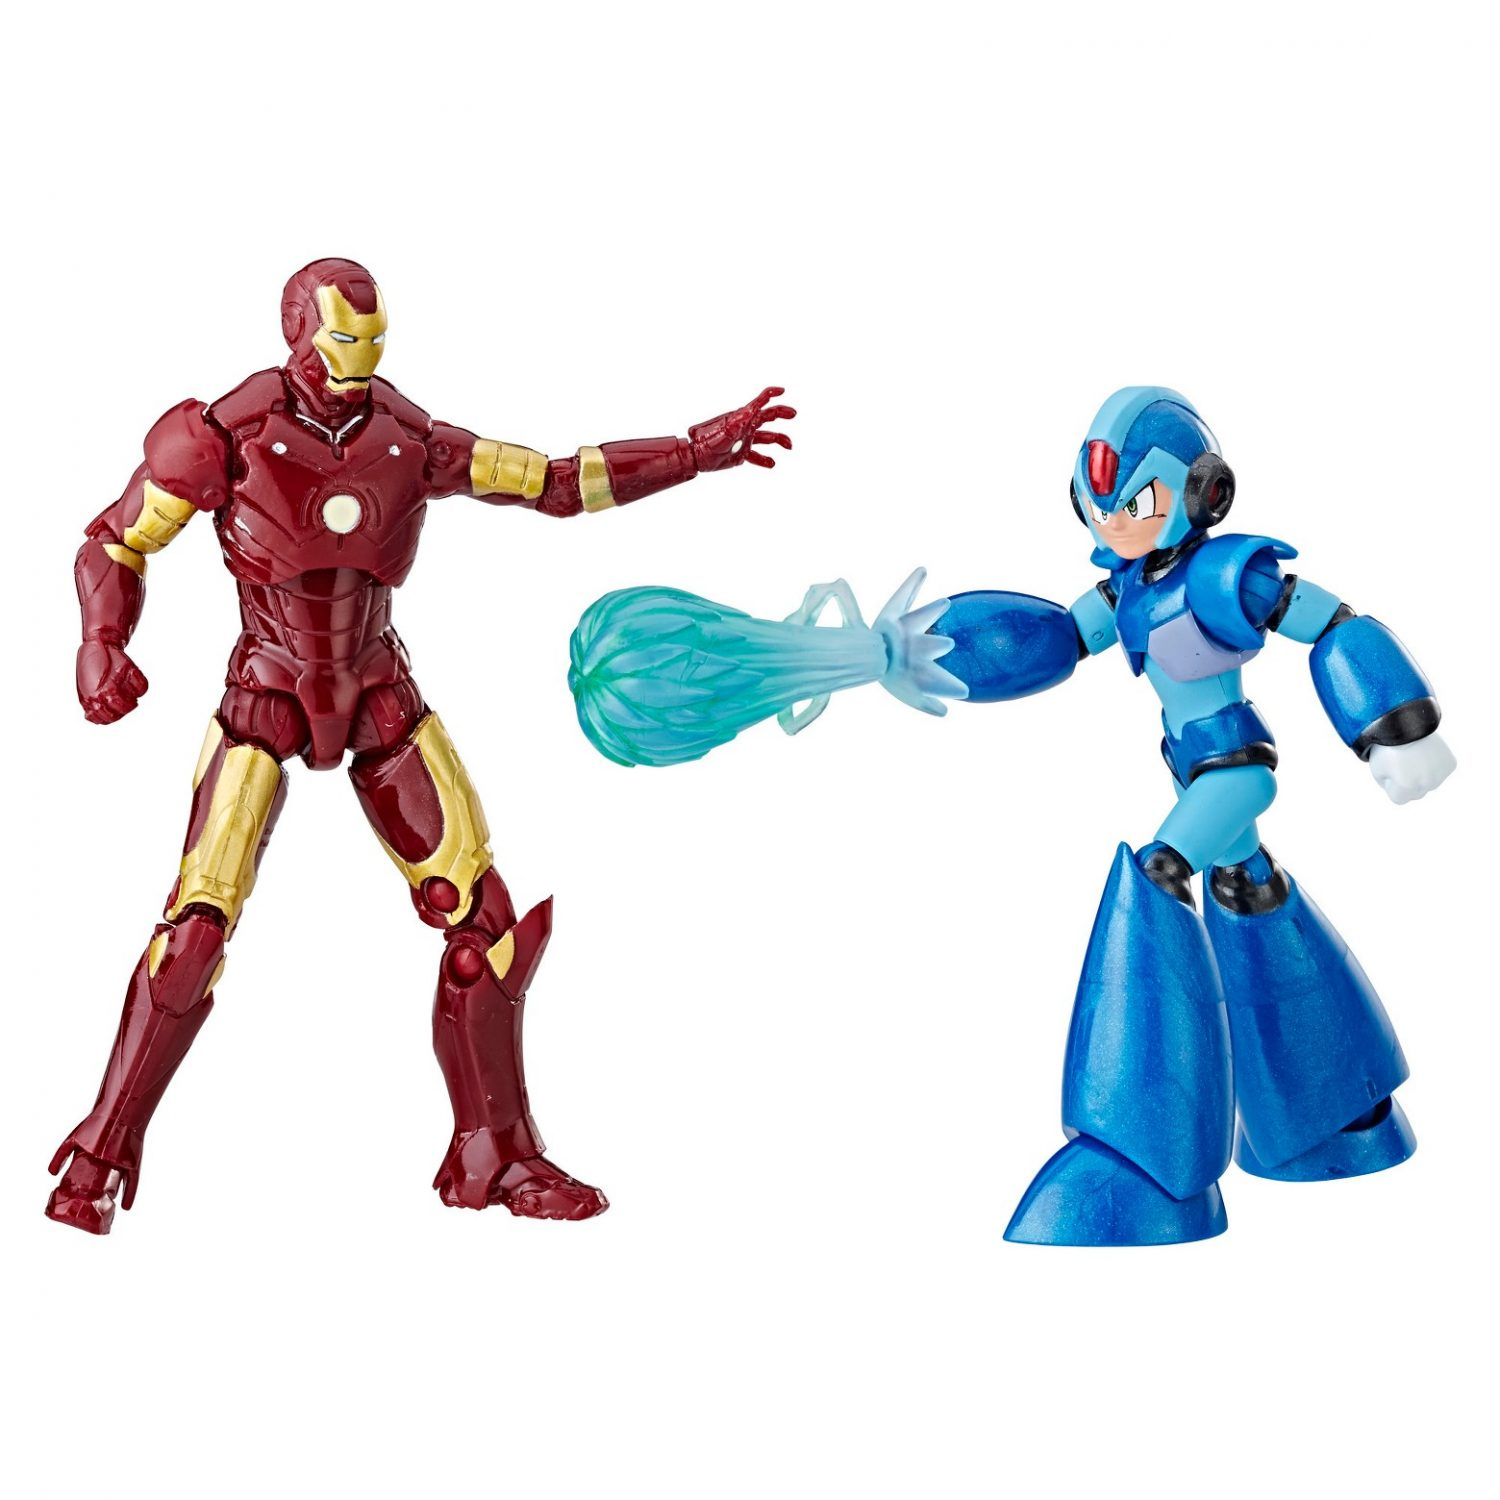 Target Exclusive Marvel Vs. Capcom Infinite – Iron Man Vs. Mega Man 2-Pack Now $11.99